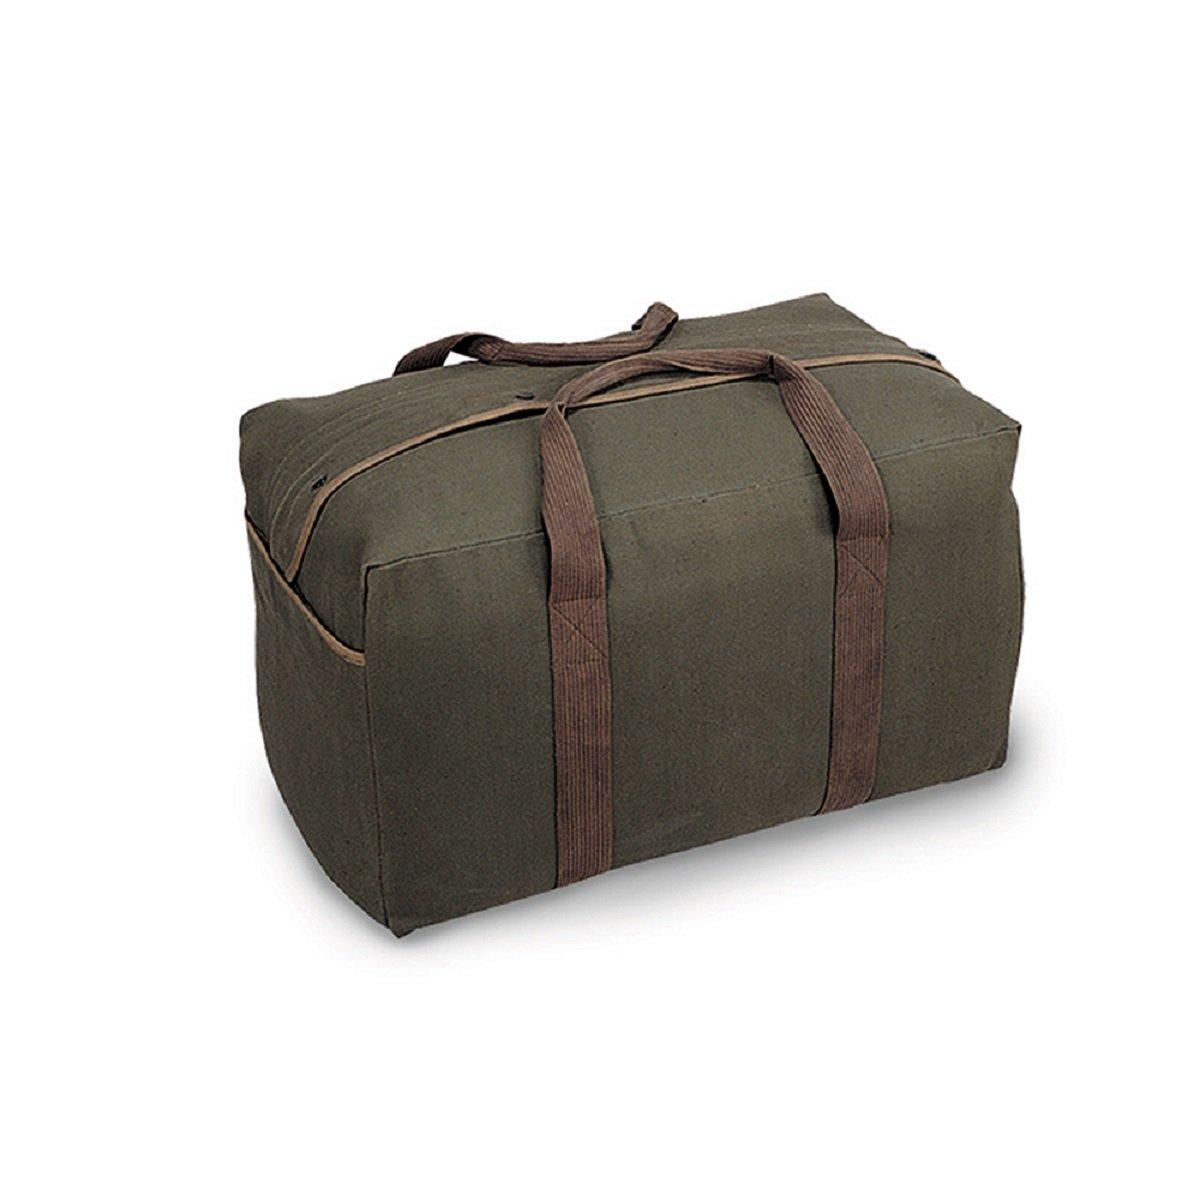 PARACHUTE/CARGO BAG - BLACK, Case of 12 by DollarItemDirect